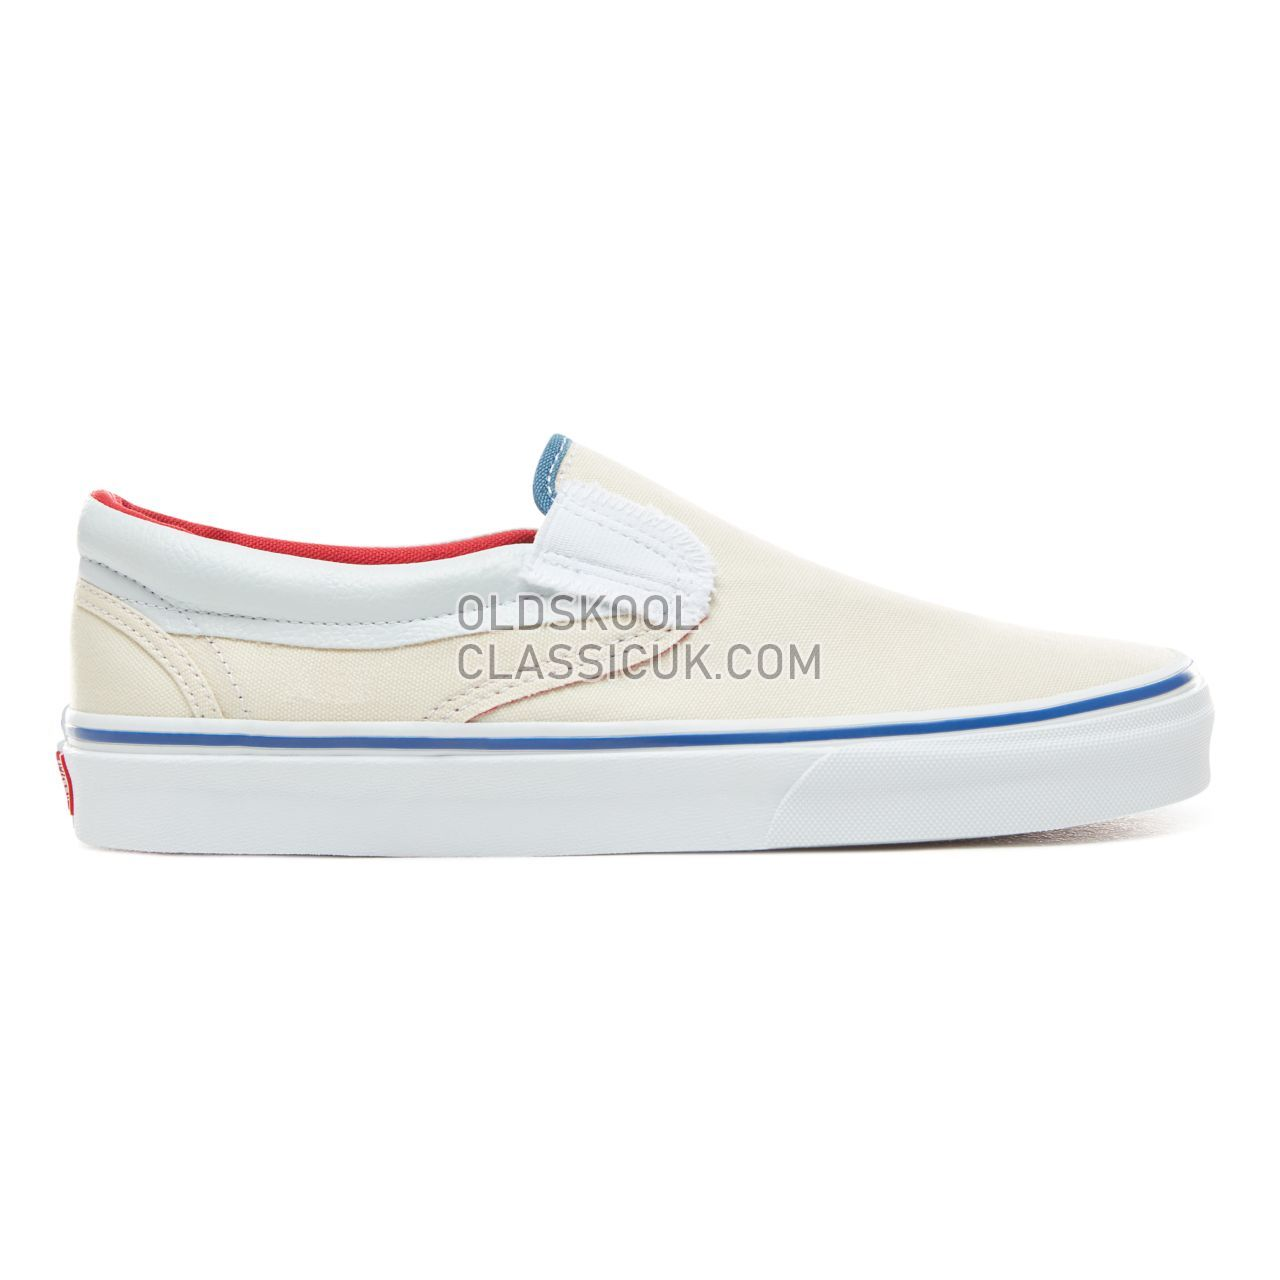 Vans Outside In Classic Slip-On Sneakers Mens (Outside In) Natural/Stv Navy/Red VN0A38F7VME Shoes